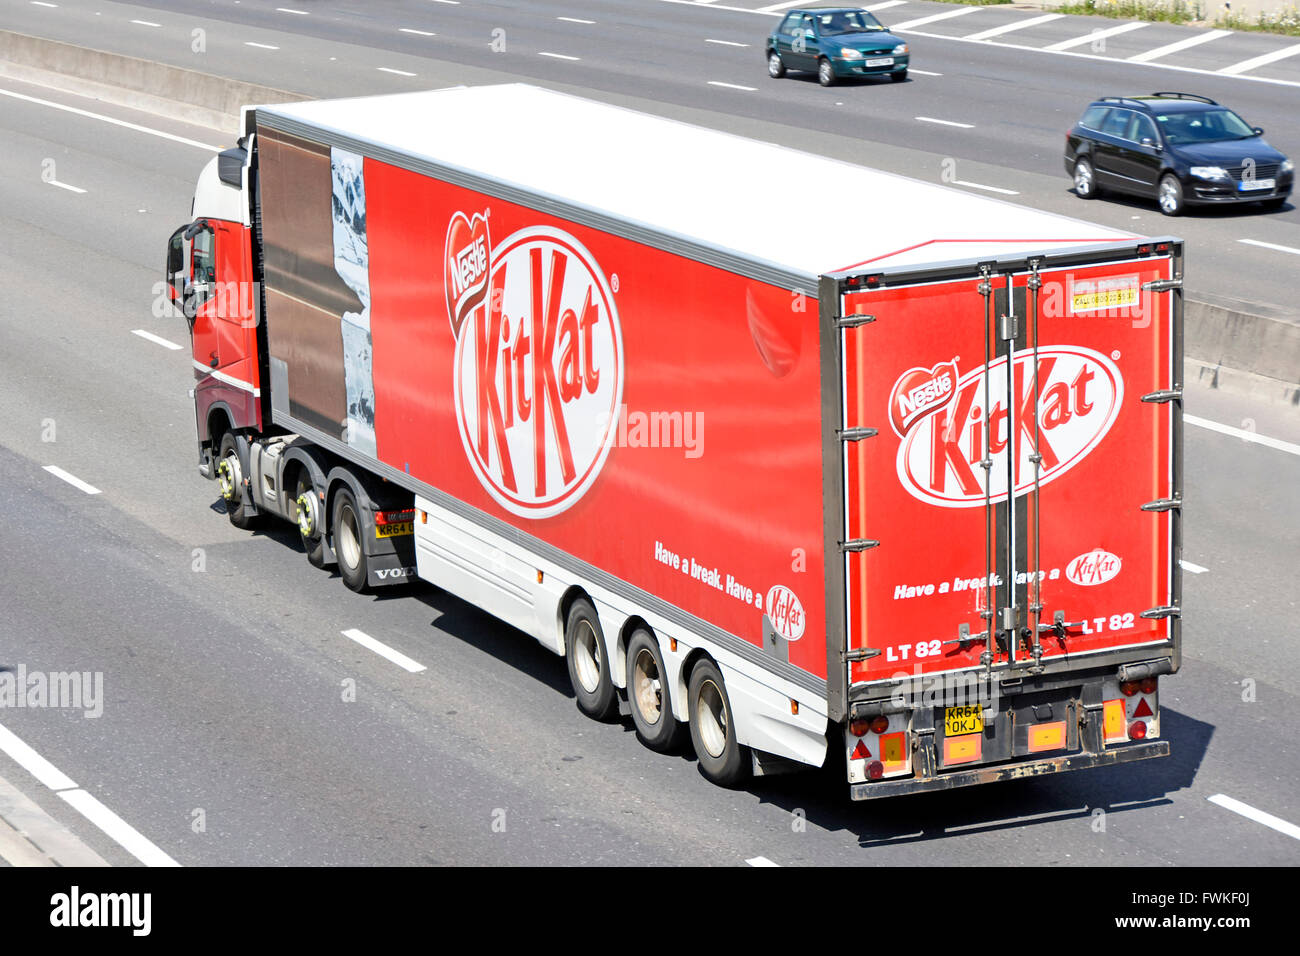 Transportation logistics Kit Kat chocolate bar & wrapper graphics on side of articulated trailer advertising - Stock Image